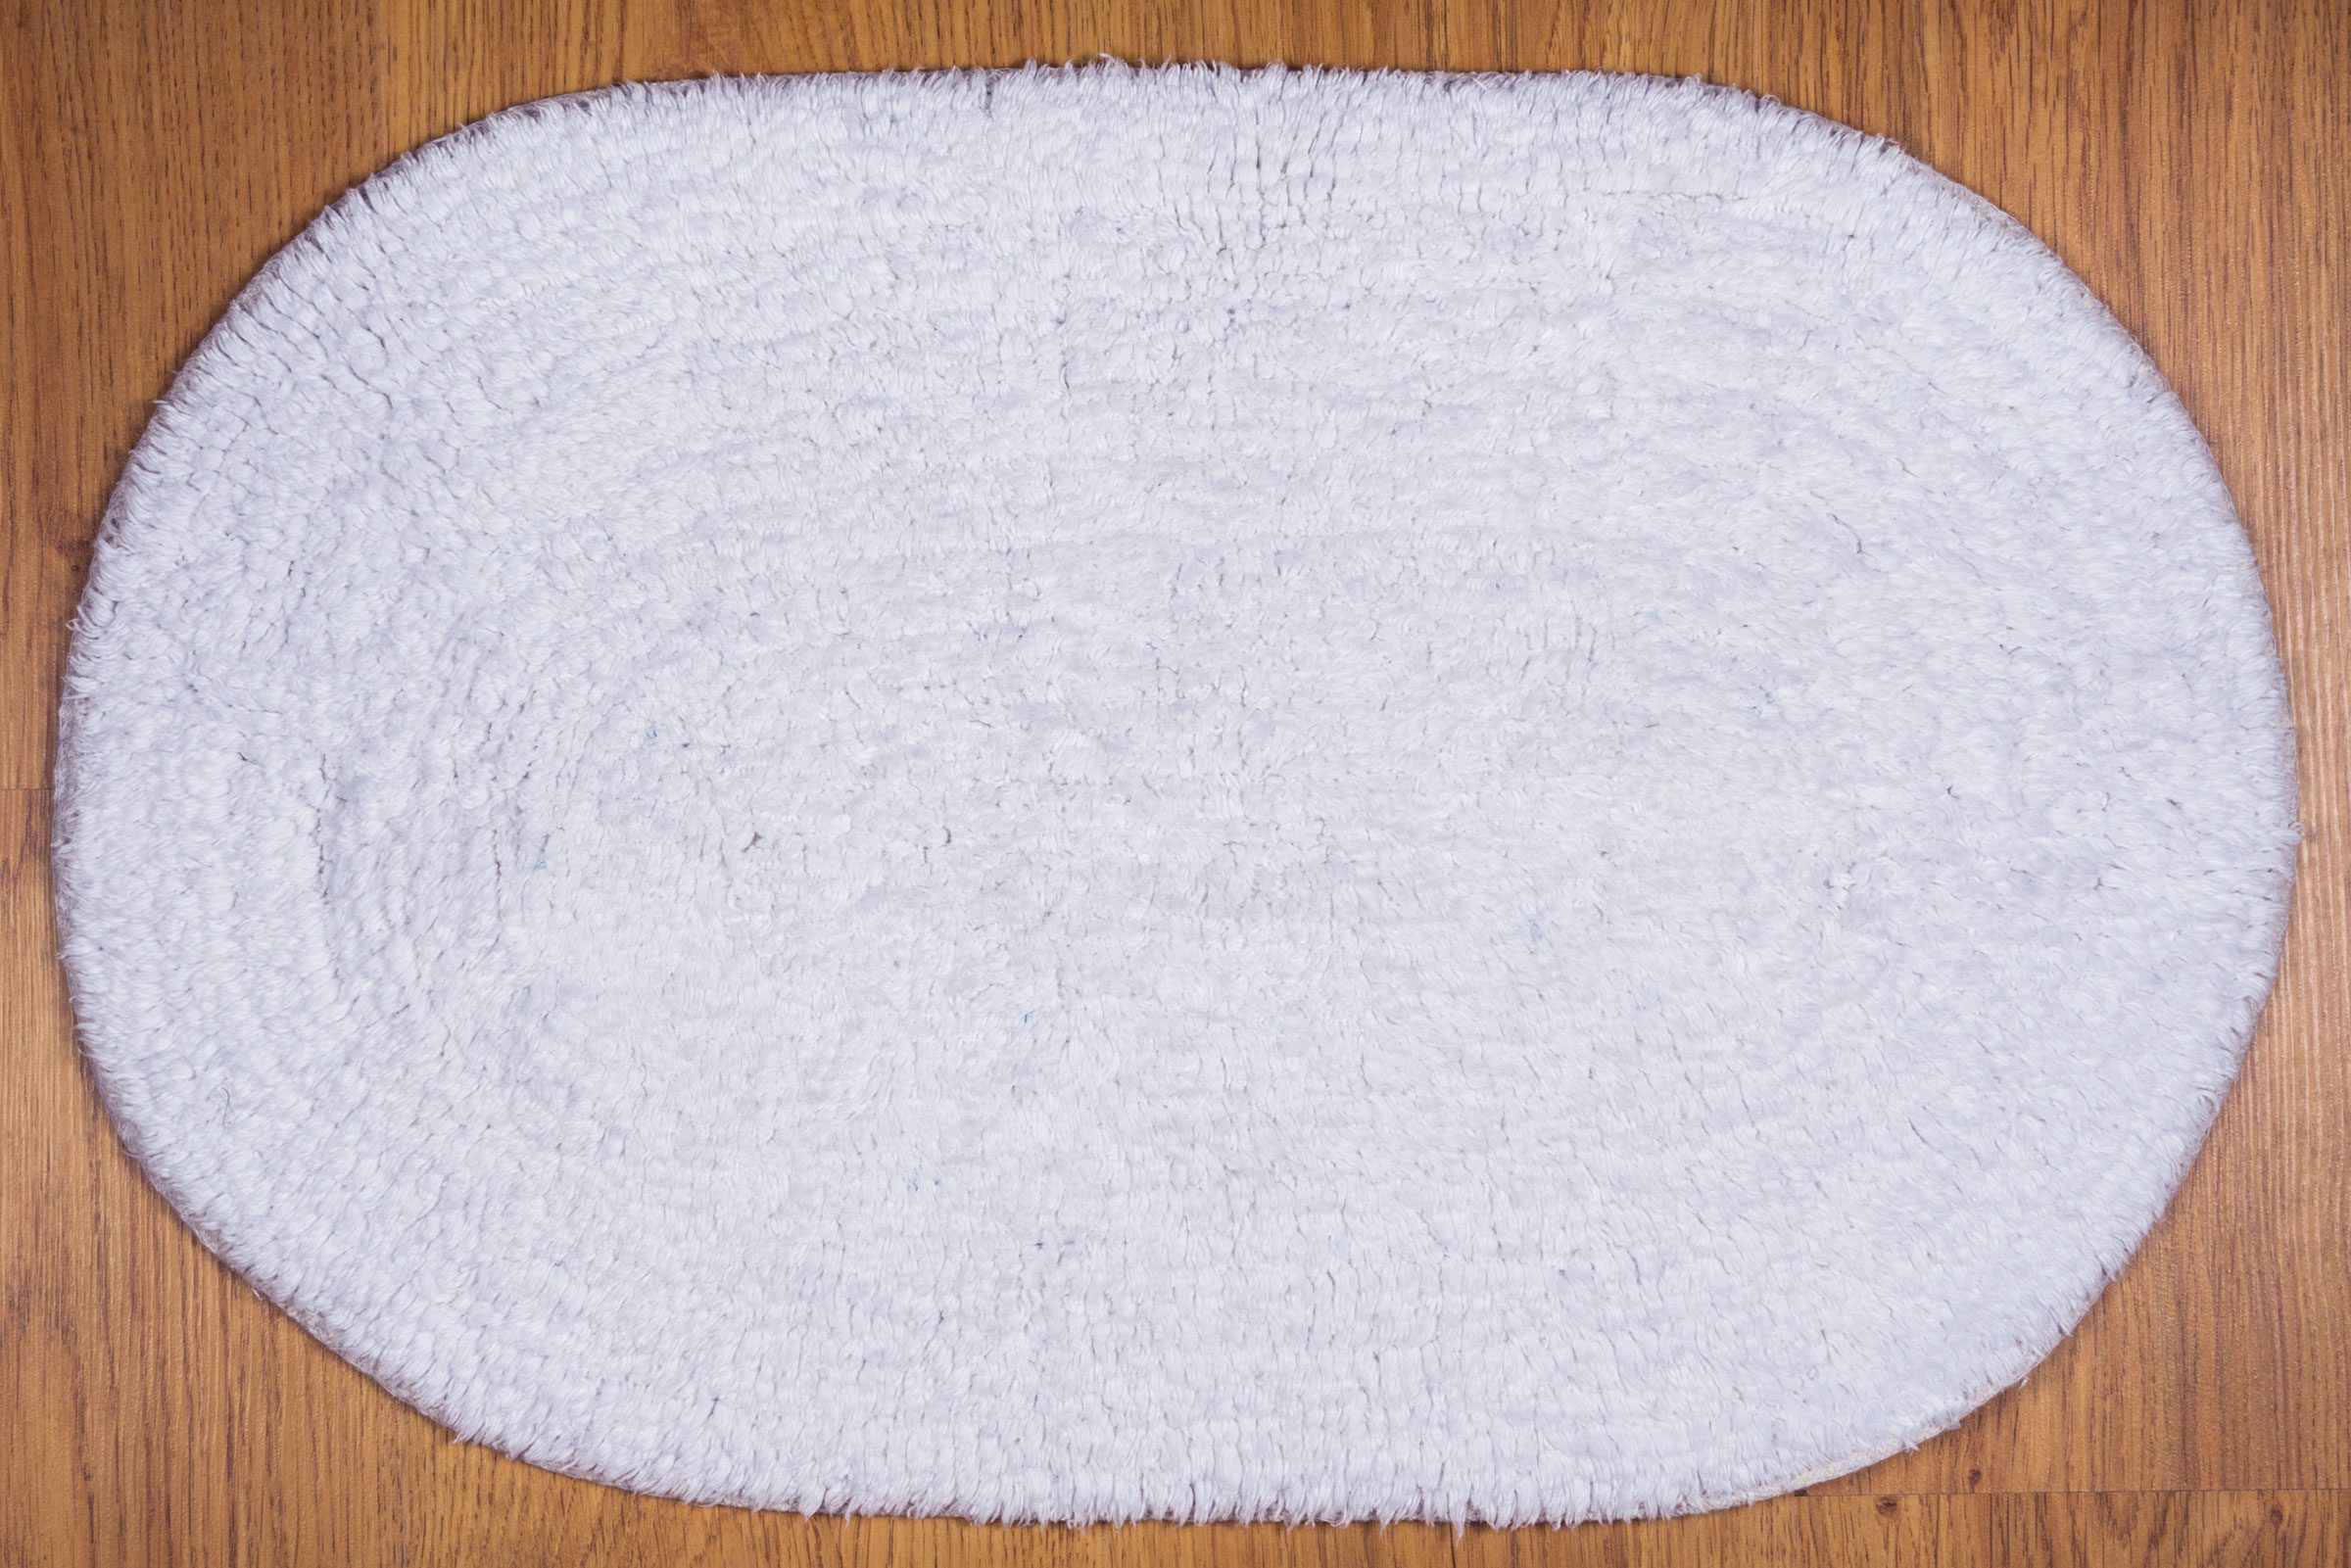 Vacuuming Bathroom Mats Is A Nightmare Simple Housecleaning Tricks Reader S Digest